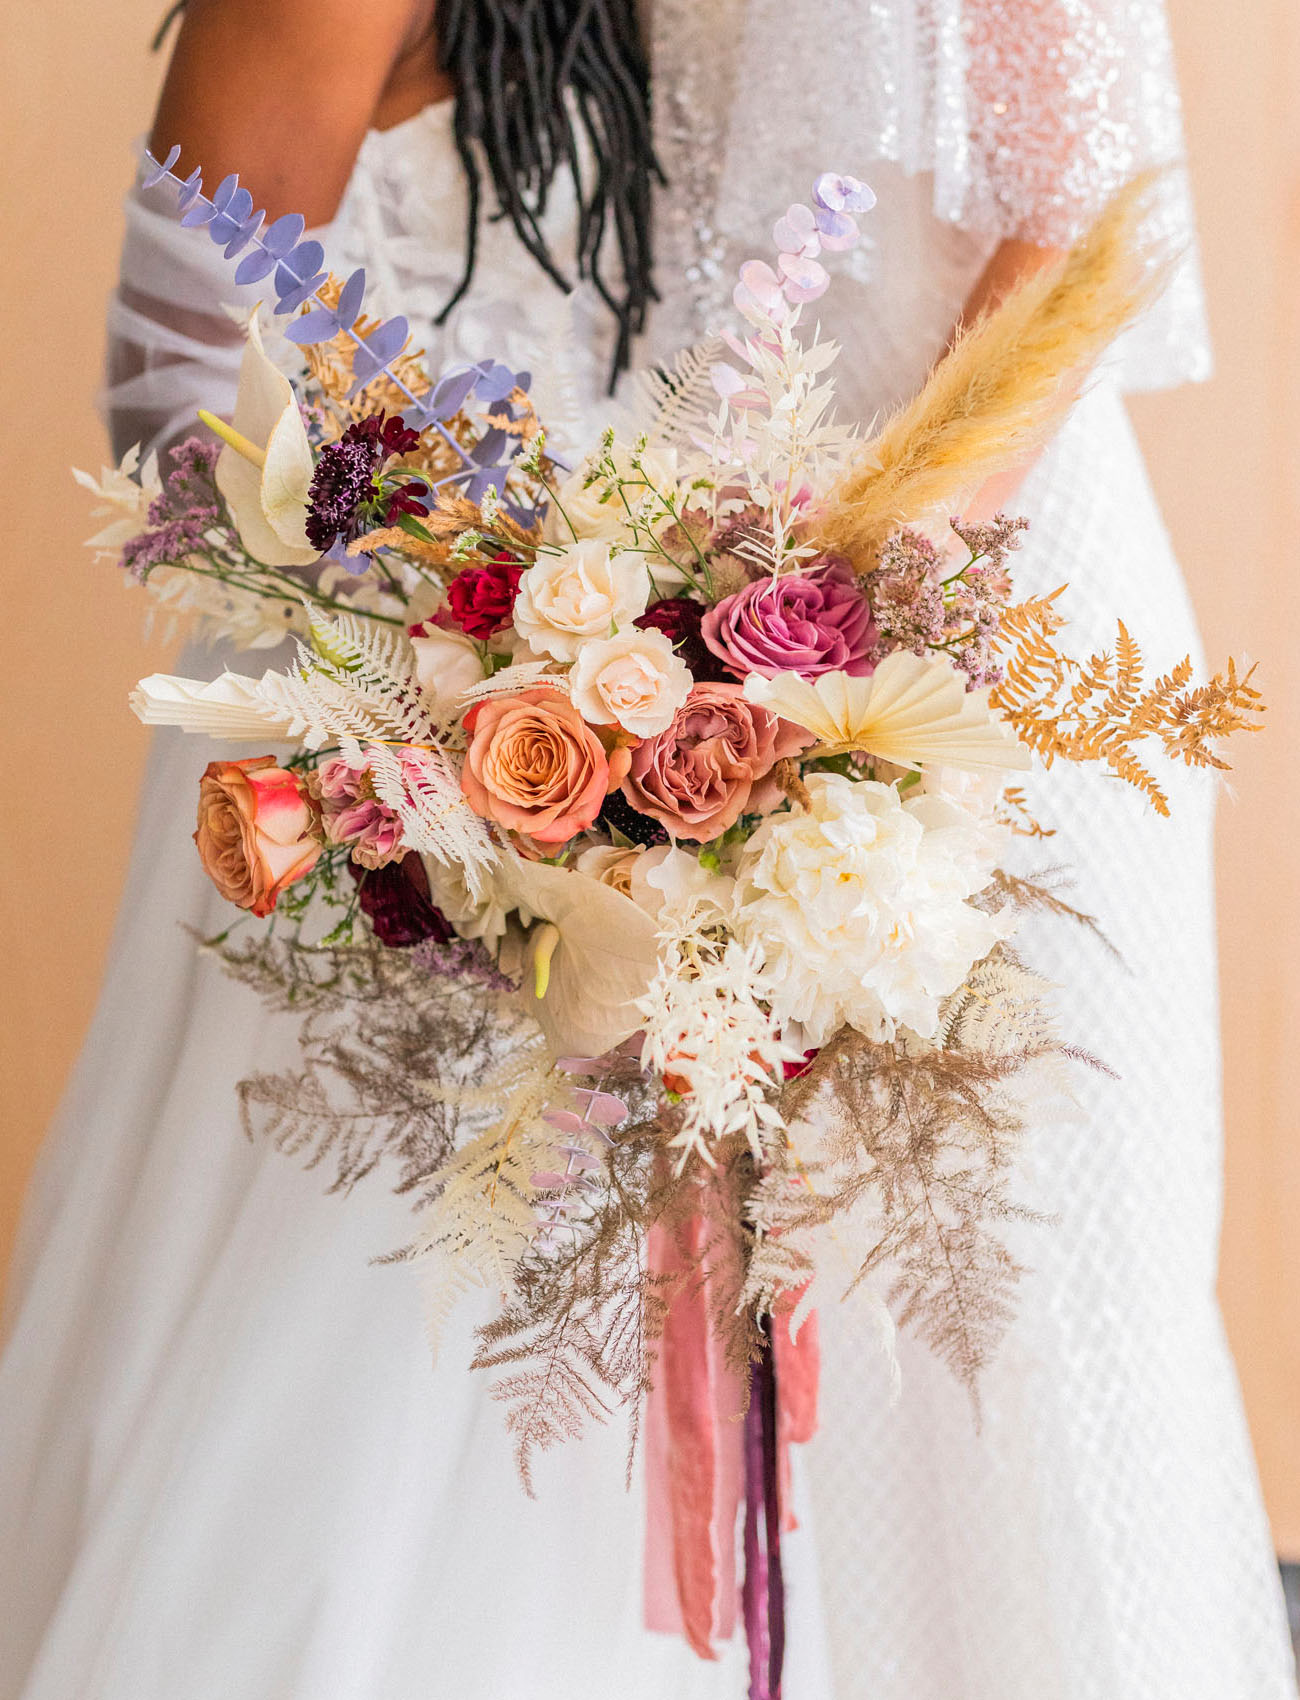 The wedding bouquet was spectacular, in peachy, pink, neutrals and purple